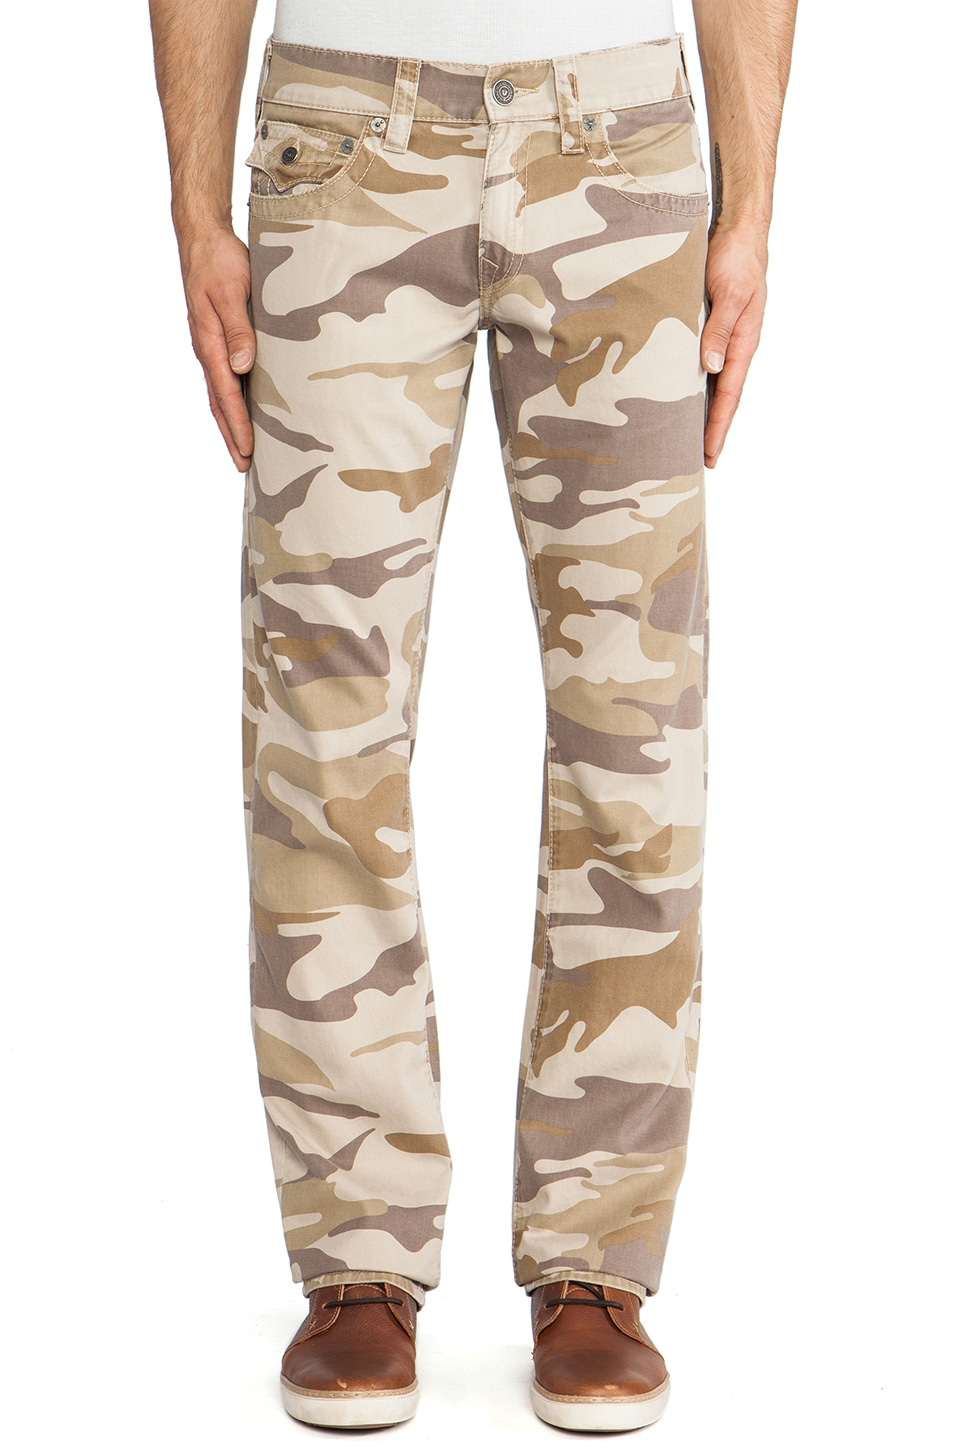 True Religion Ricky Twill in Sand Camo